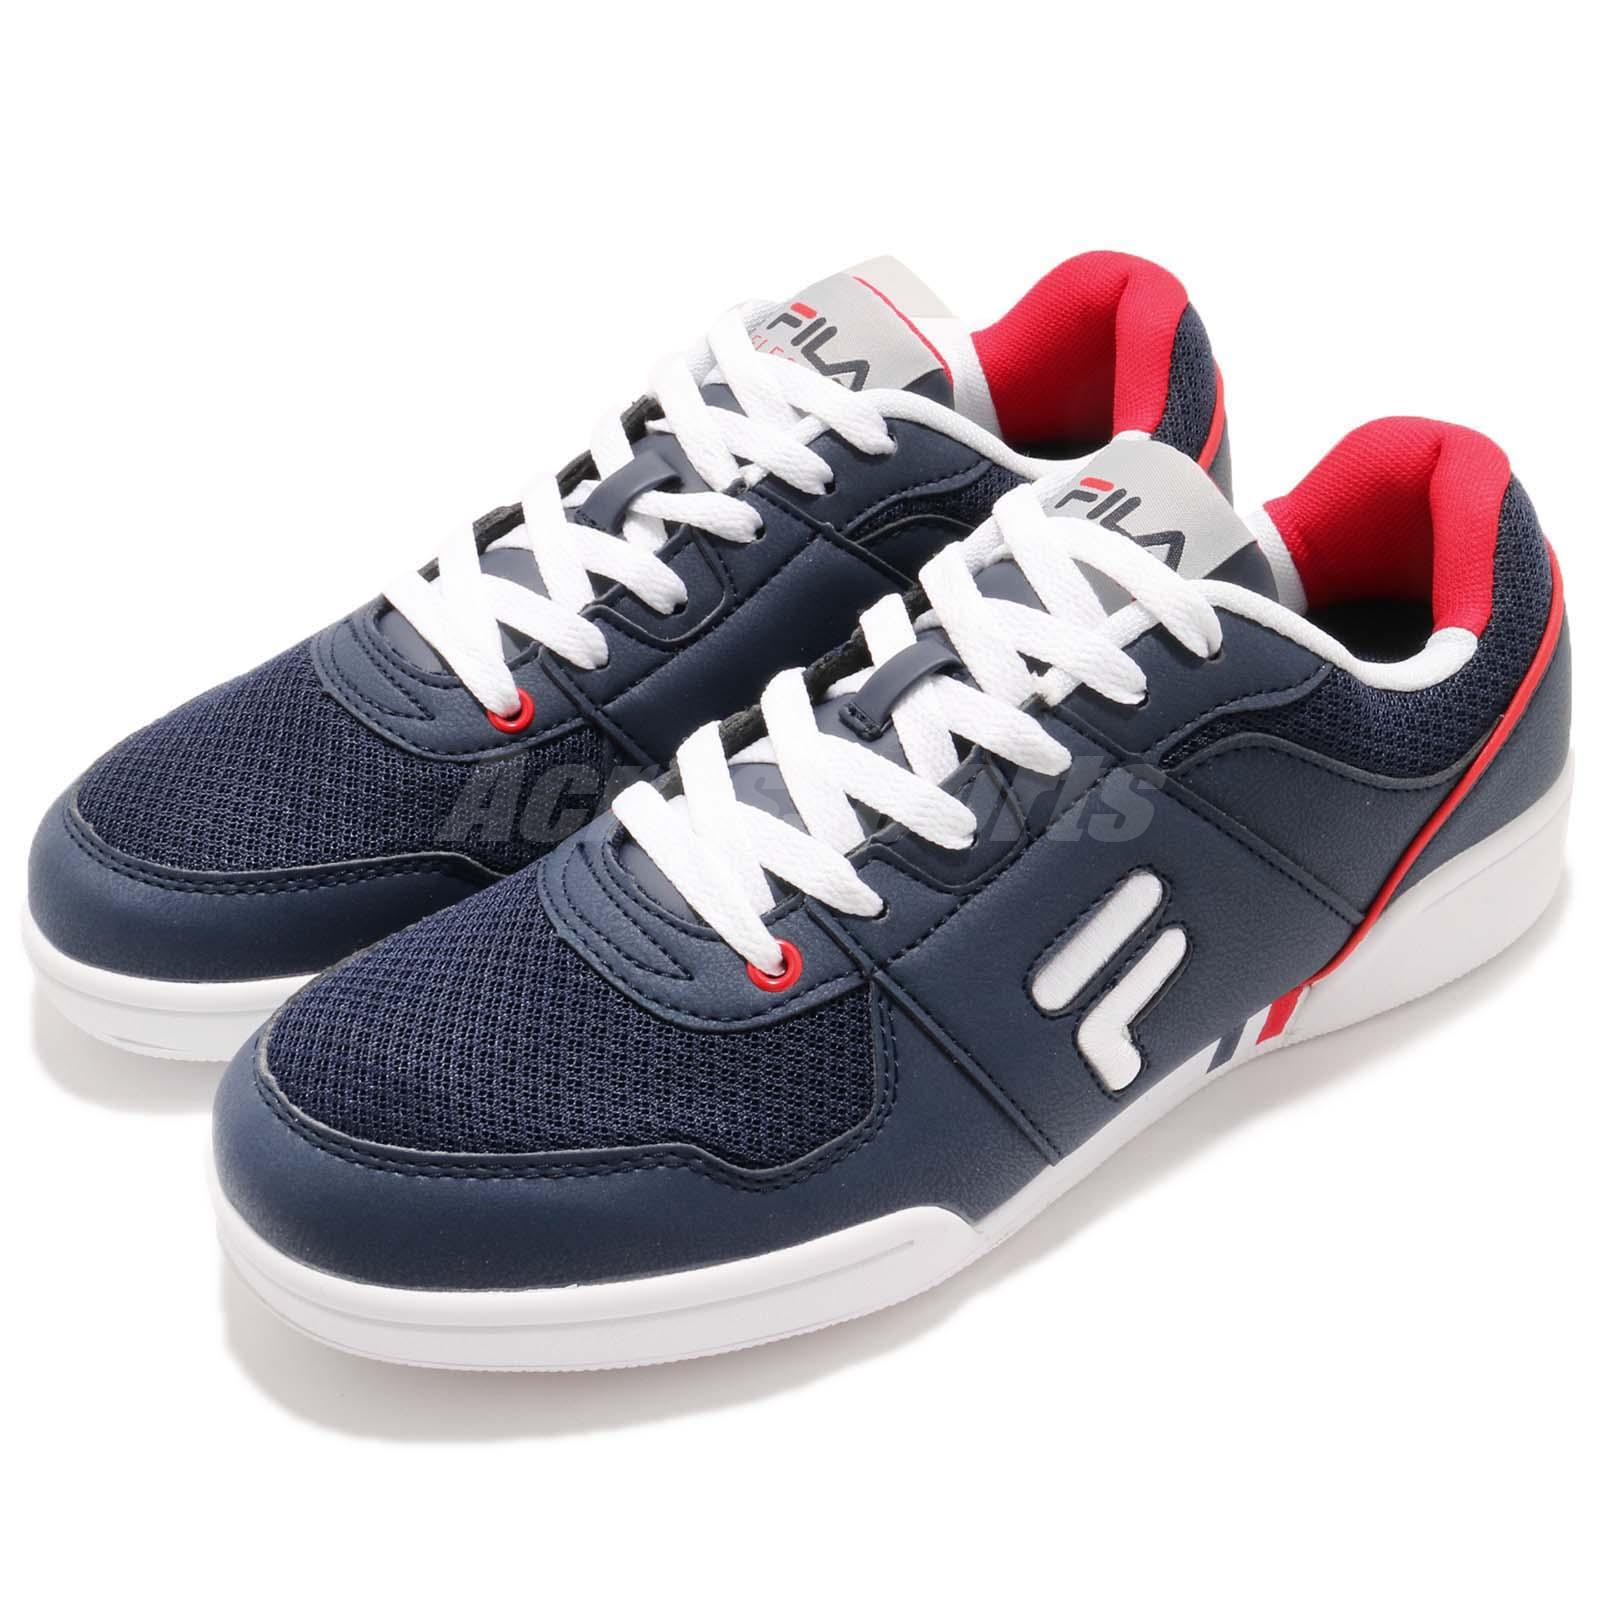 fd4338195f63 Details about Fila C301S Navy White Red Men Lifestyle Casual Shoes Sneakers